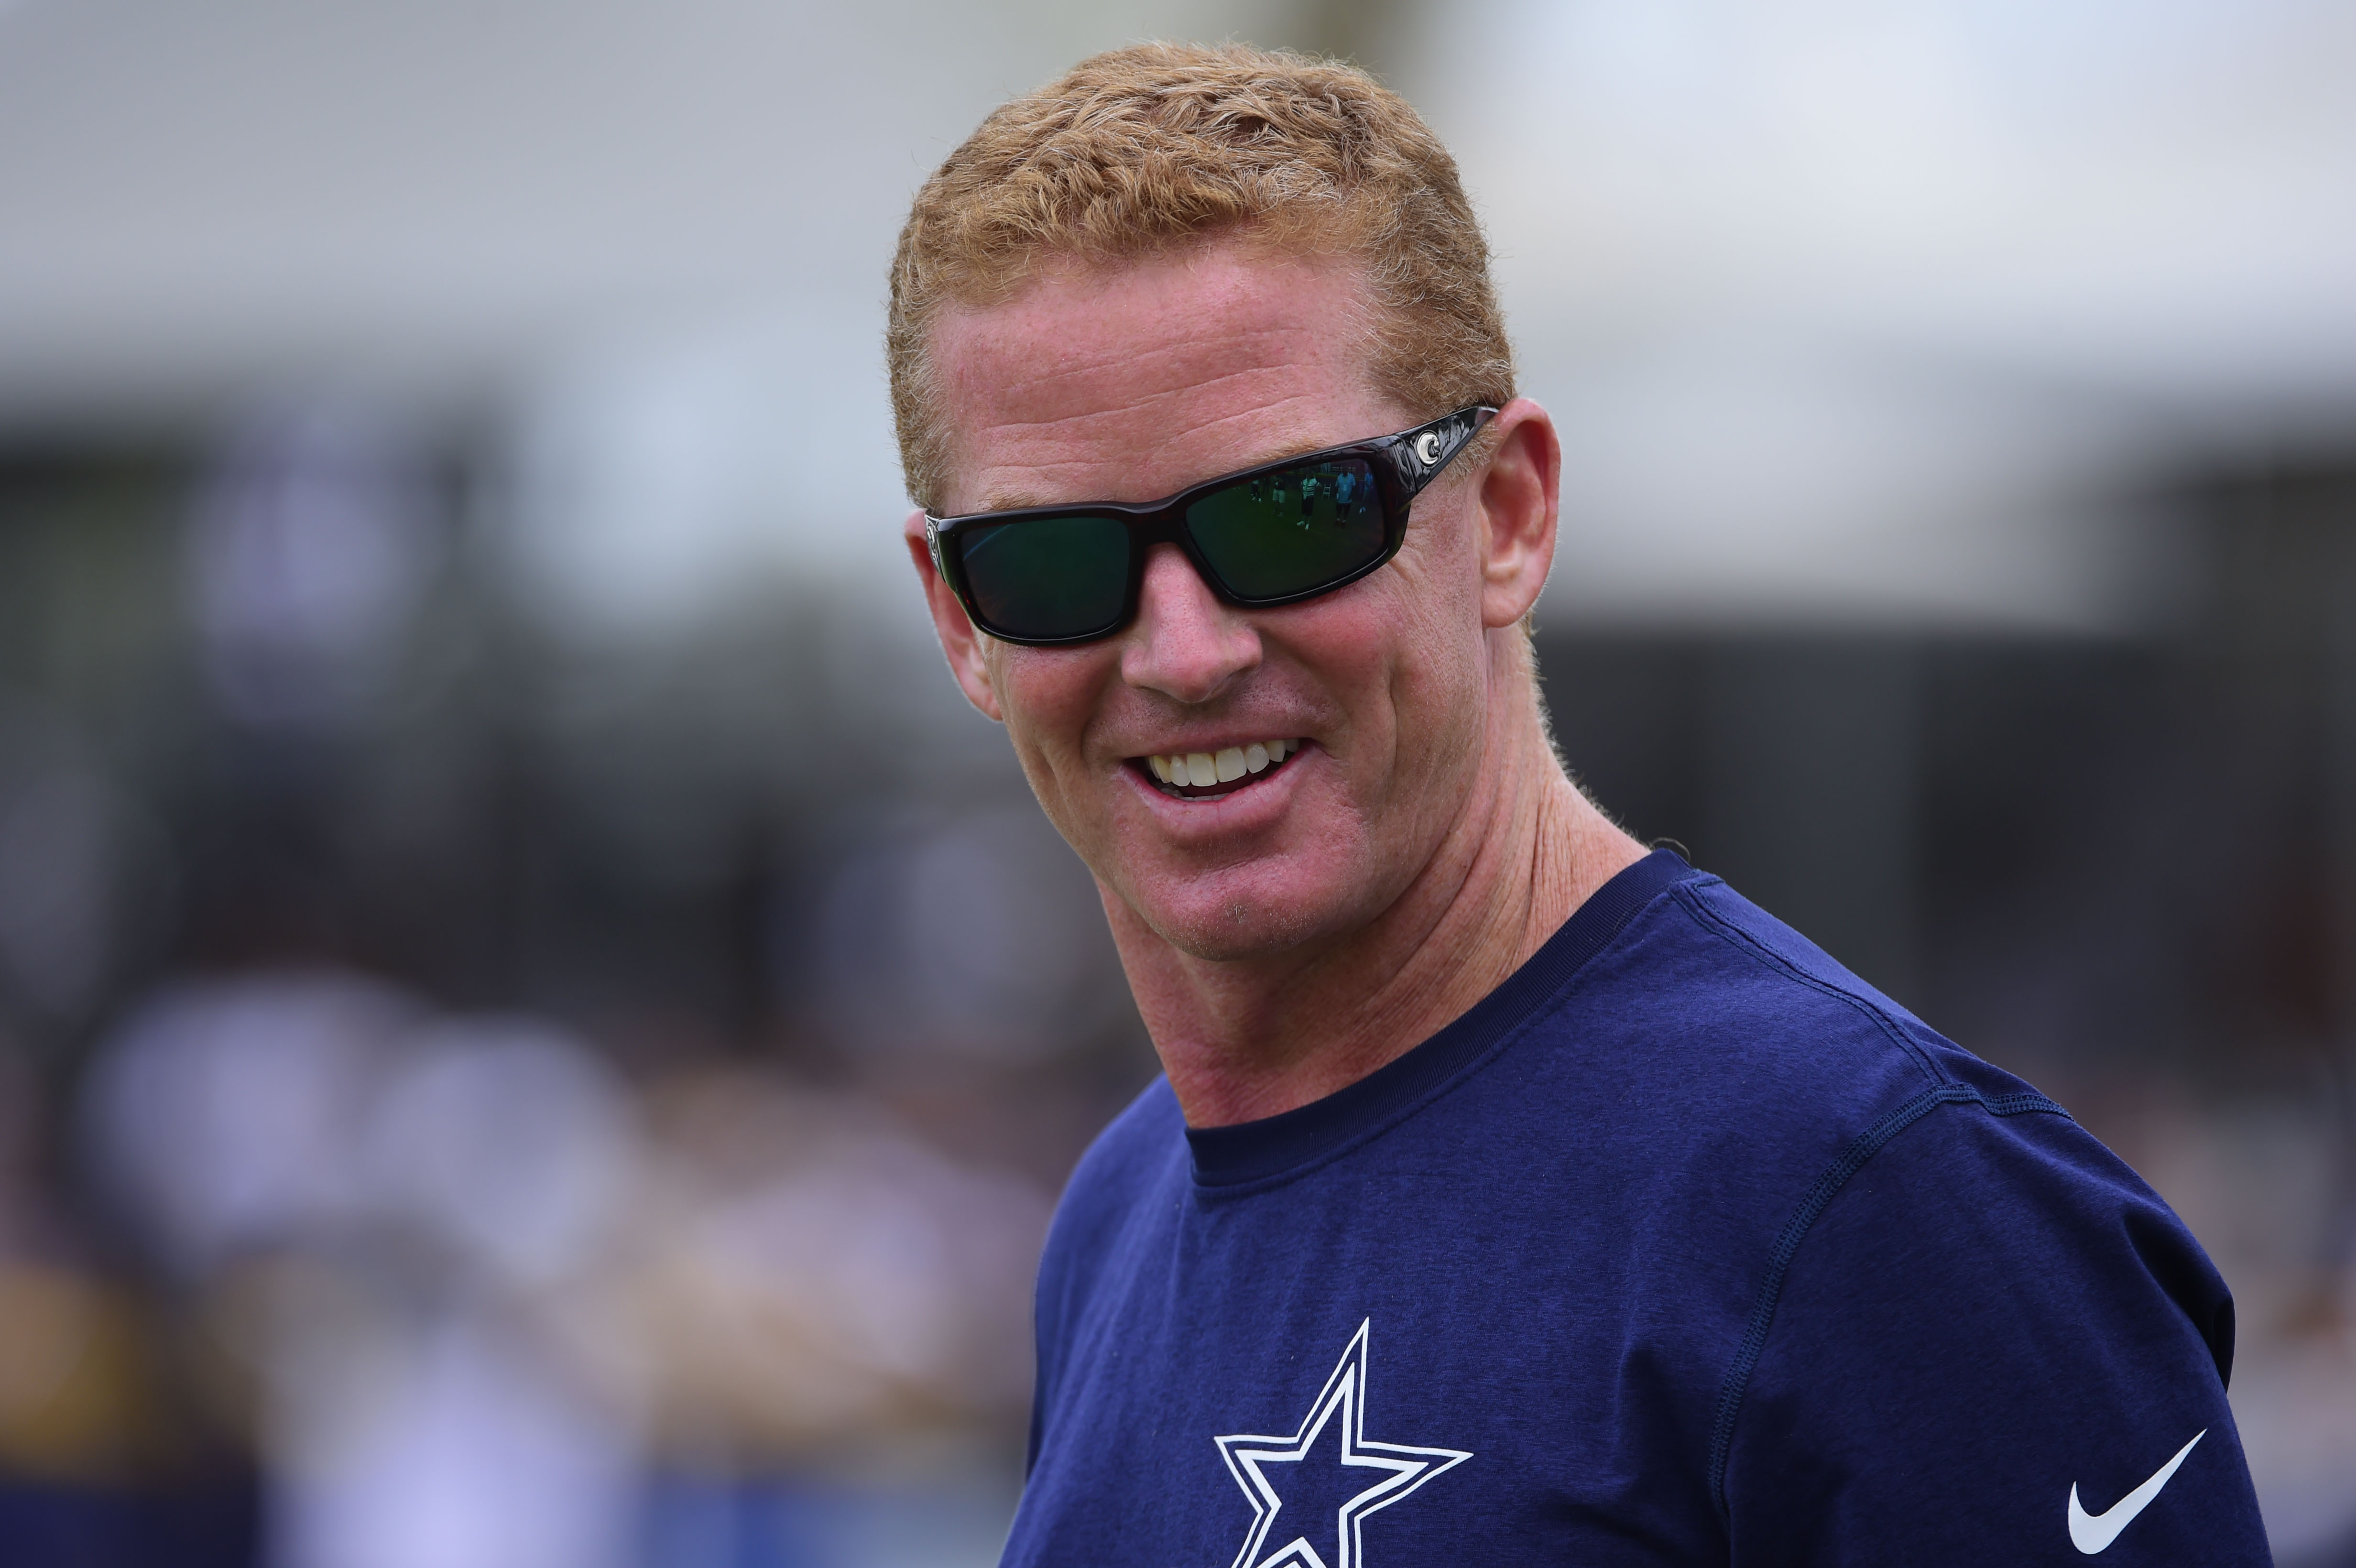 Cowboys Blog - Jason Garrett: Born to Run 3